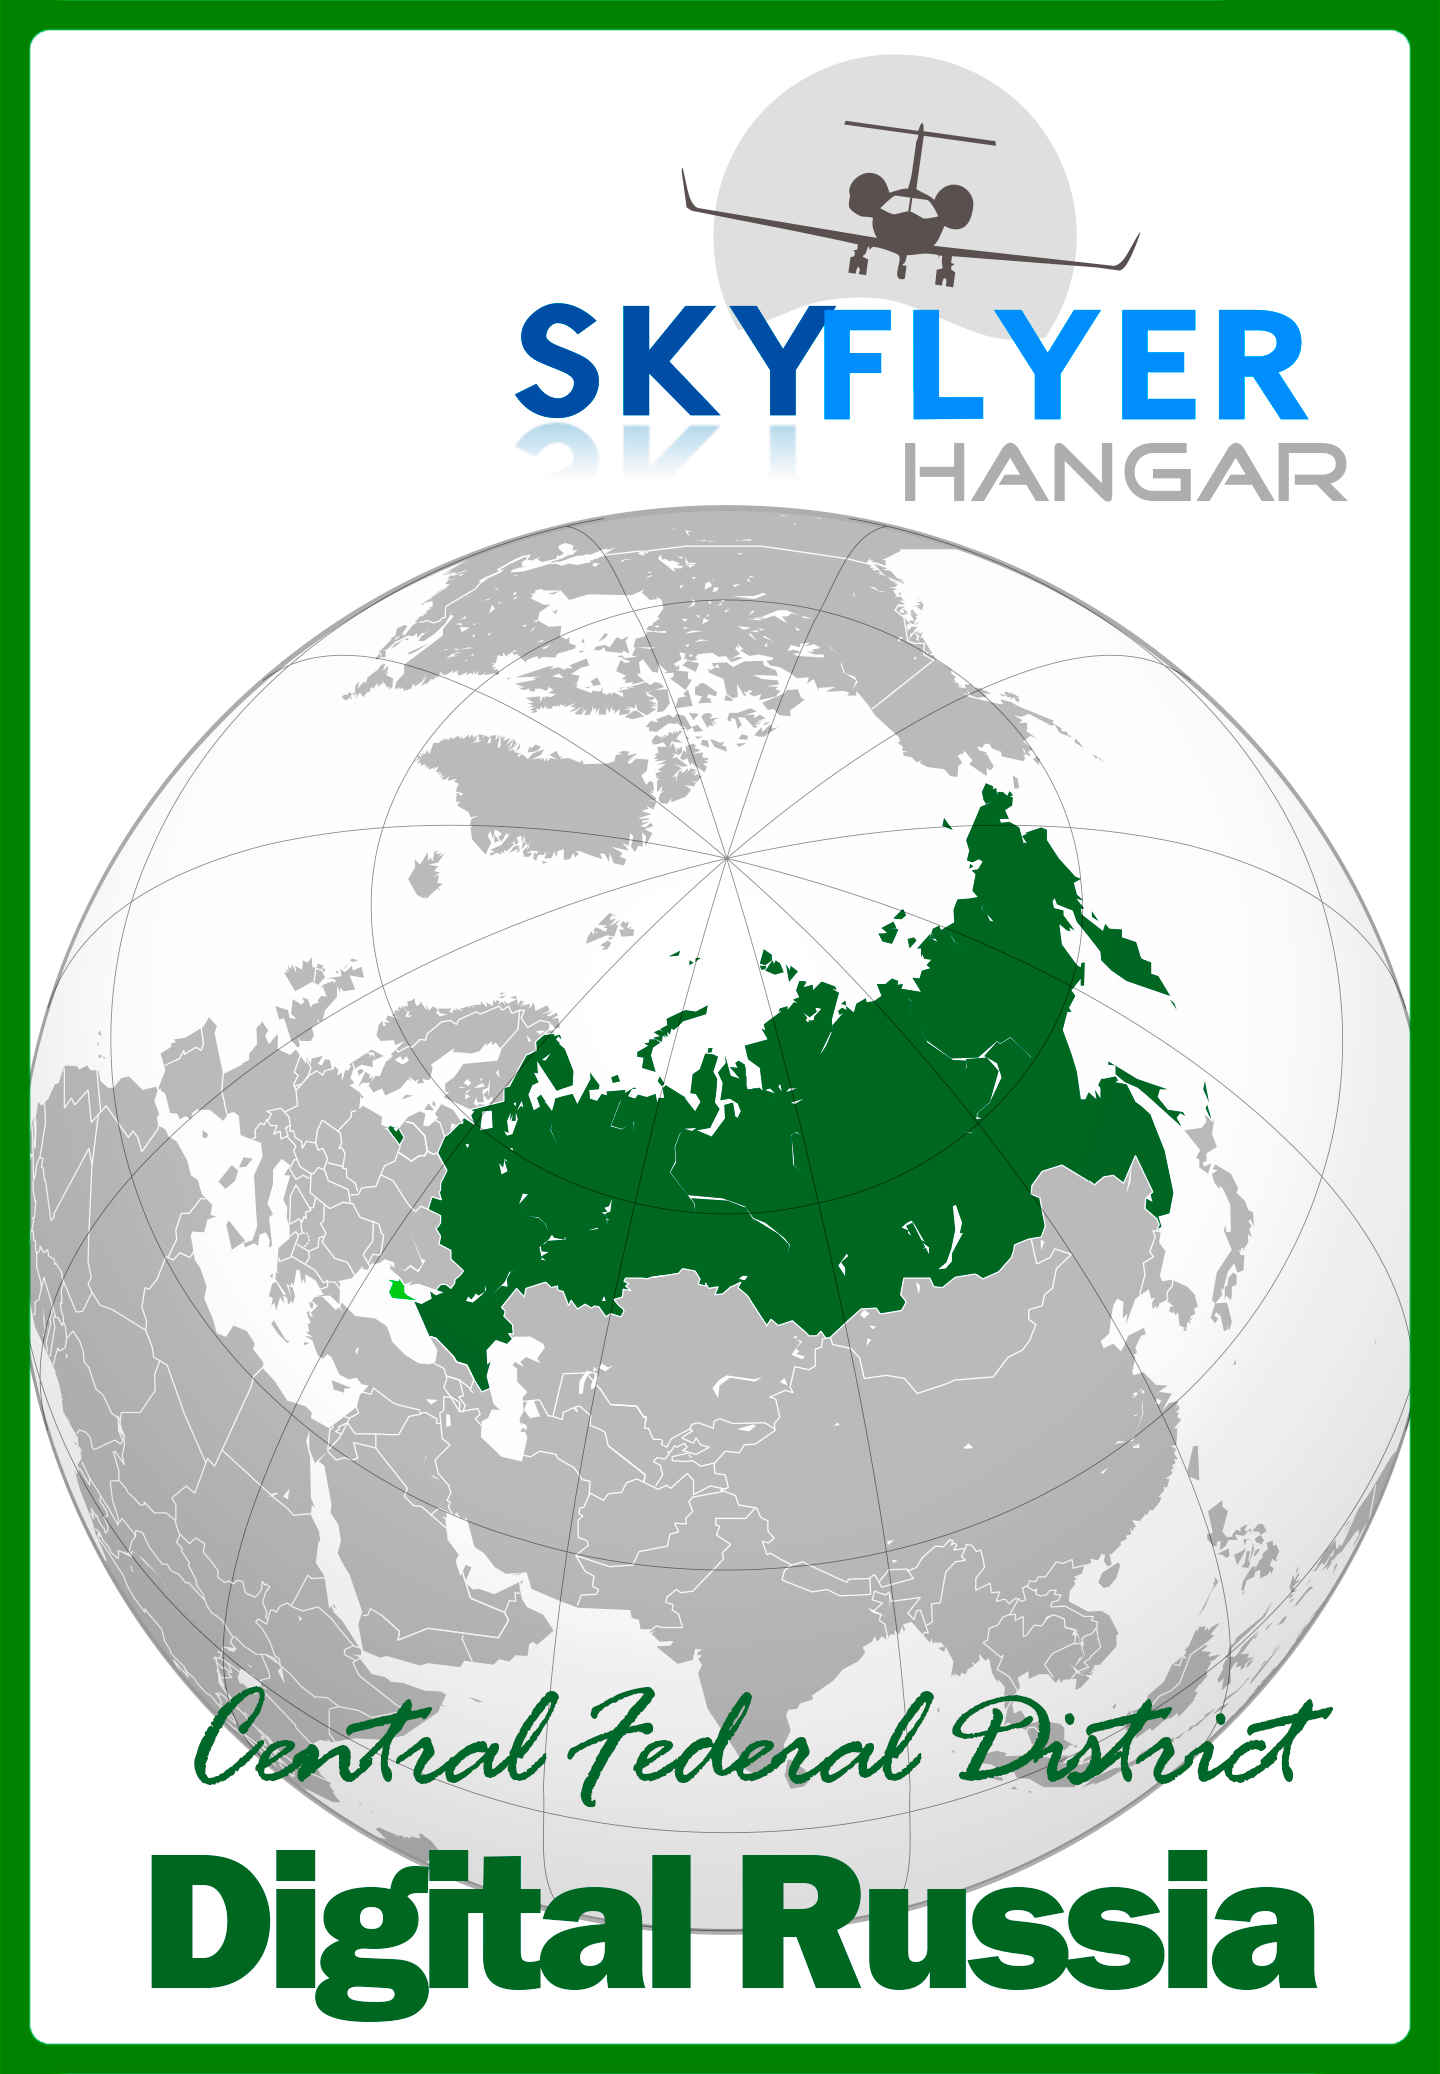 SKY FLYER HANGAR - DIGITAL RUSSIA CENTRAL FEDERAL DISTRICT P3D